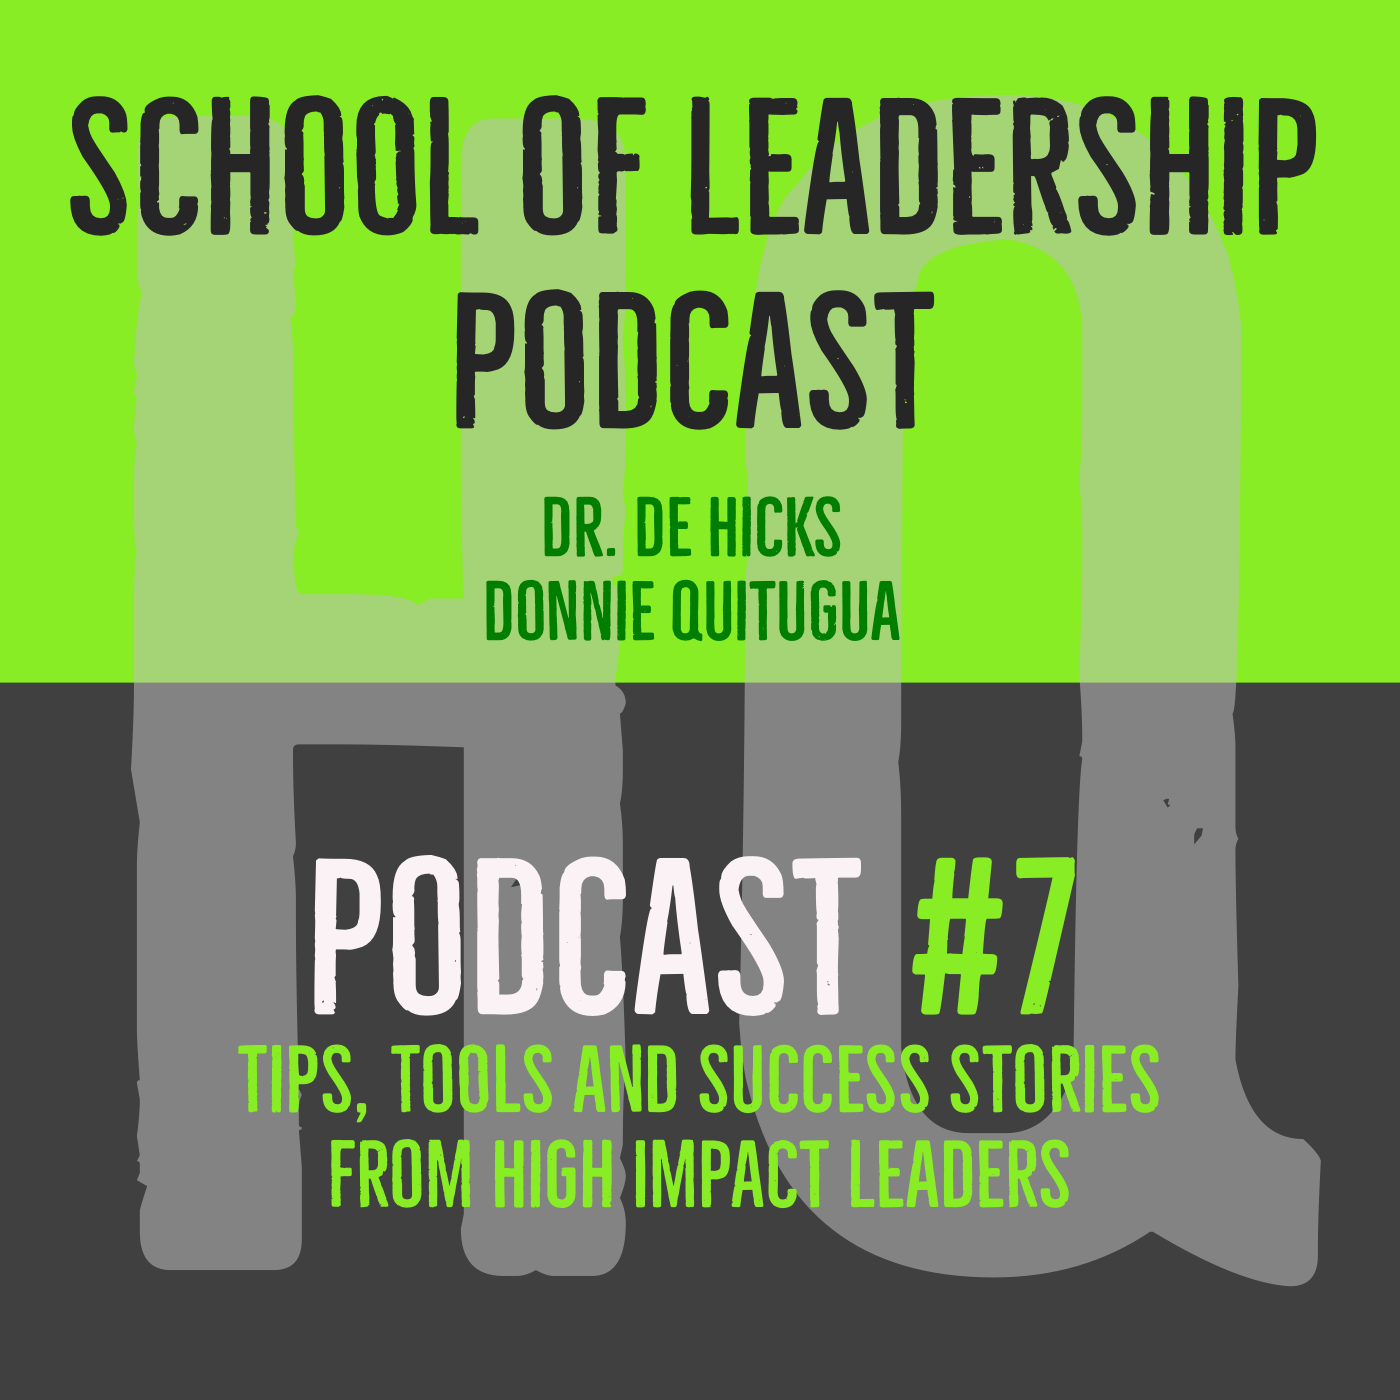 The School of Leadership Podcast #7 with Dr. De Hicks   The Unintended Consequences of Venting